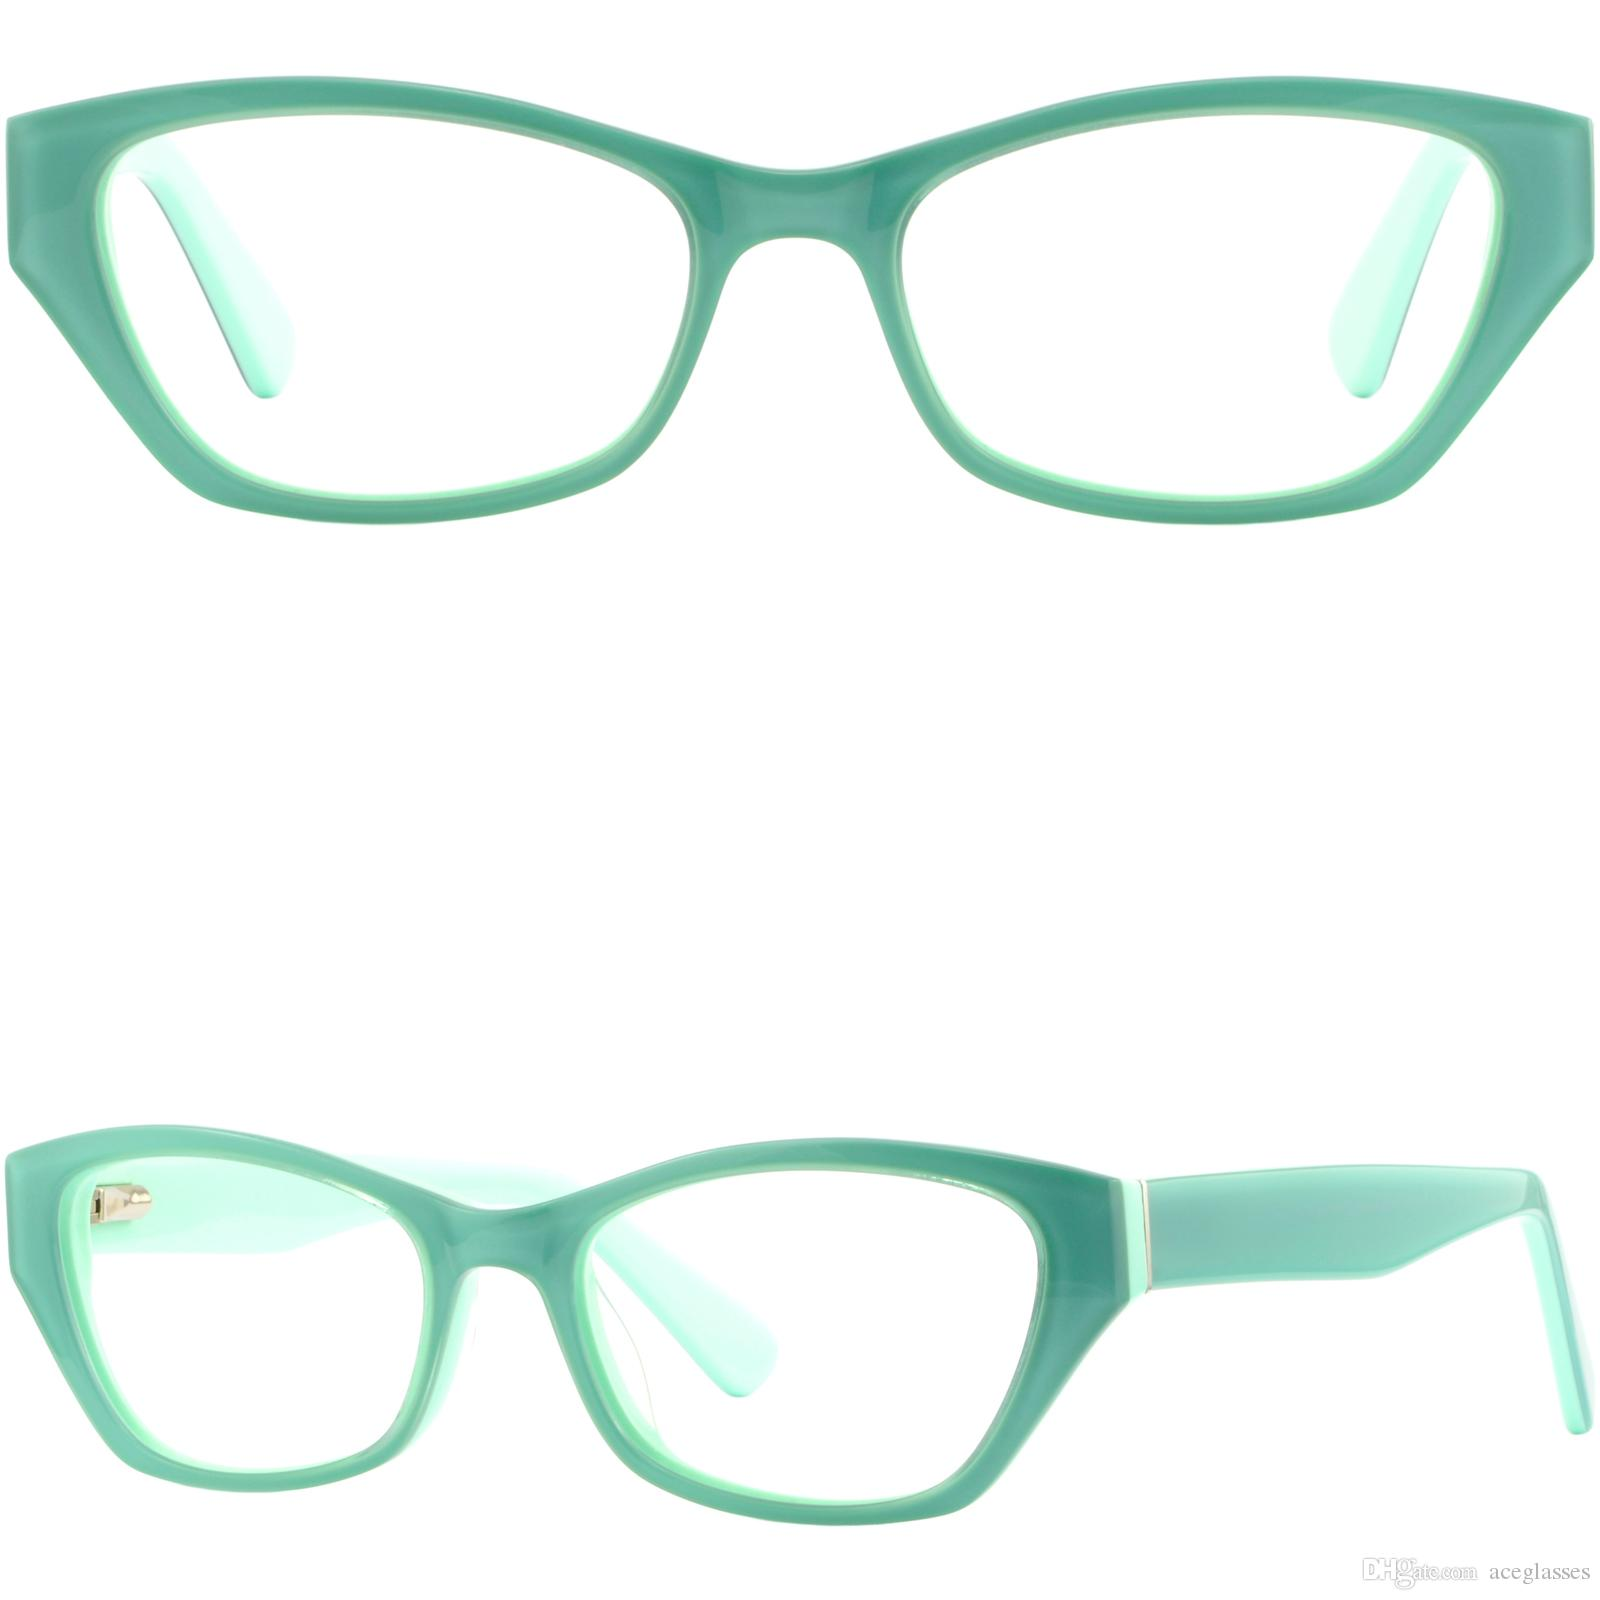 ab6a19a61c Cateye Women S Acetate Plastic Frame Green Prescription Eyeglasses Spring  Hinges Cheap Eyeglass Frames Online Custom Eyeglass Frames From Aceglasses